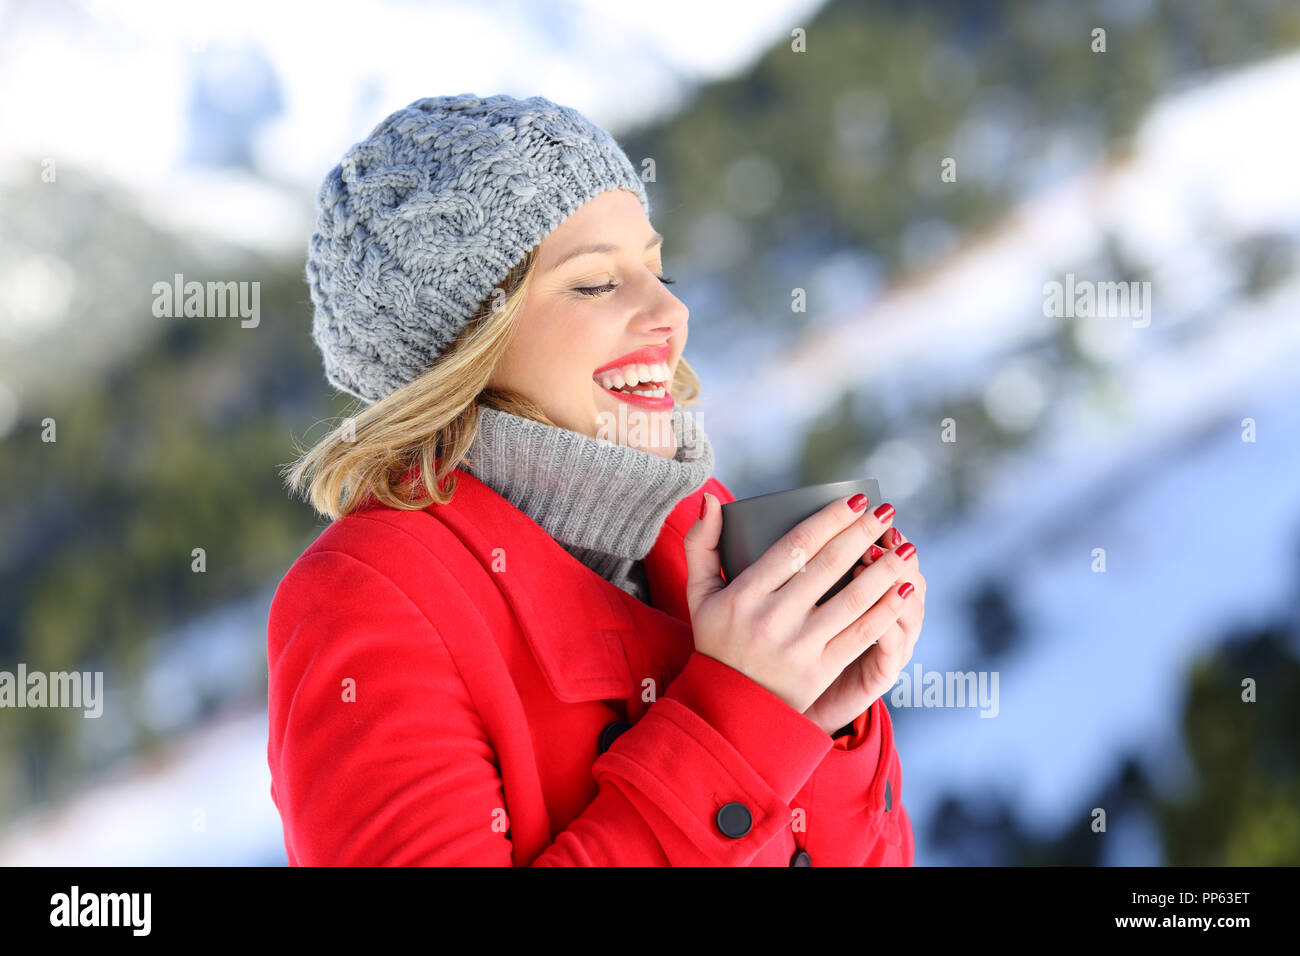 75a31de92574 Happy woman keeping warm holding a coffee mug in a snowy mountain in ...